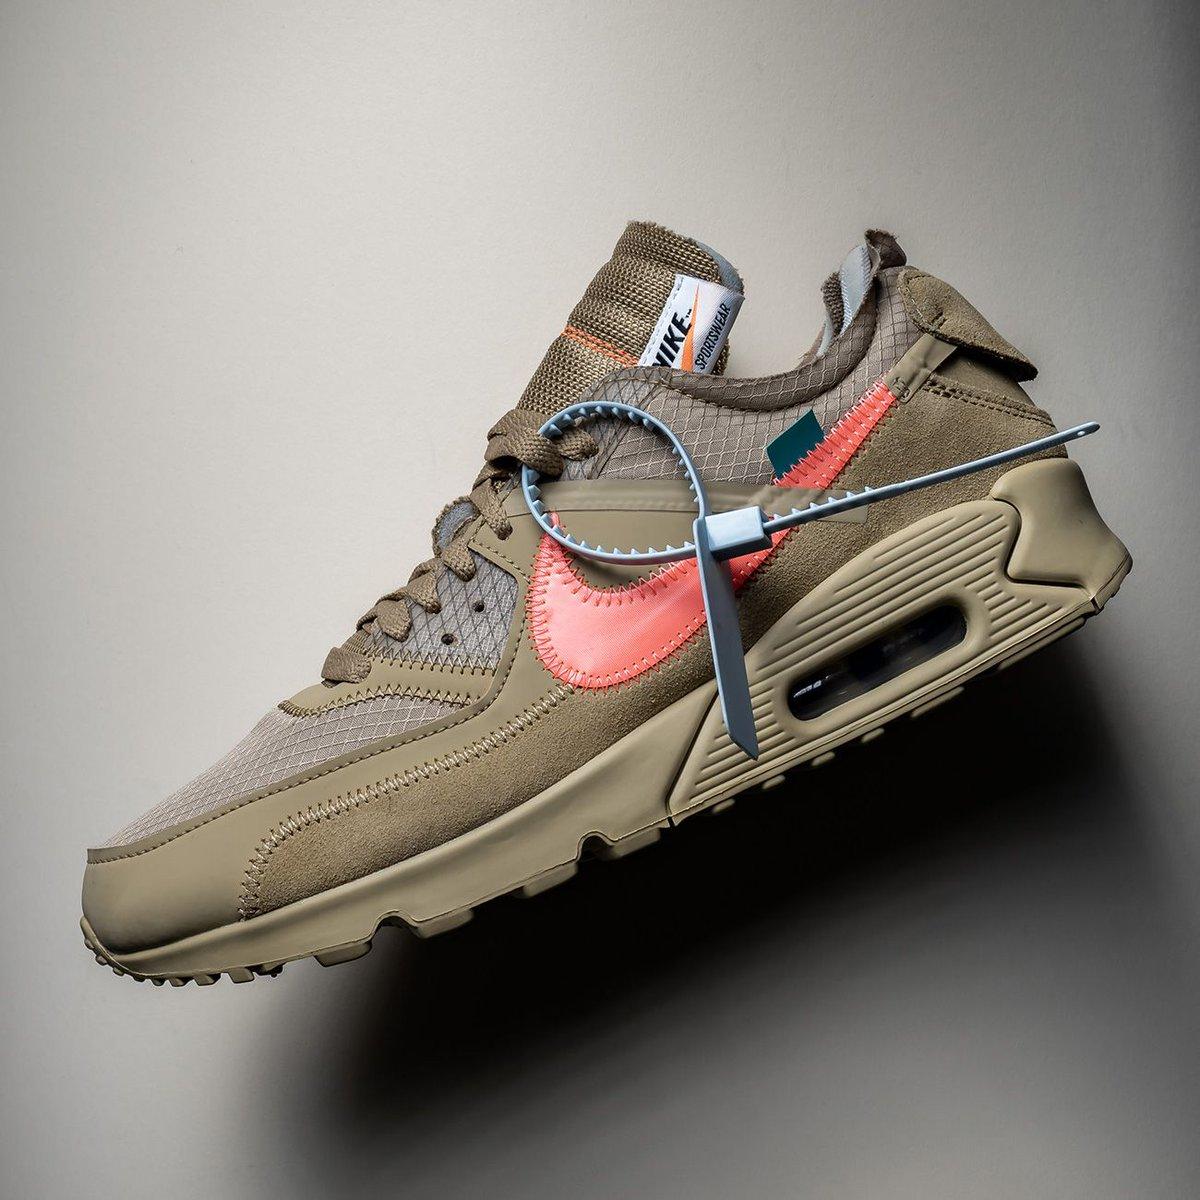 """cd8bab6c36 ... Nike Air Max 90, Virgil Abloh finally presented a new colorway this  winter. The """"Desert Ore"""" edition was worth the anticipation, featuring a  look ..."""